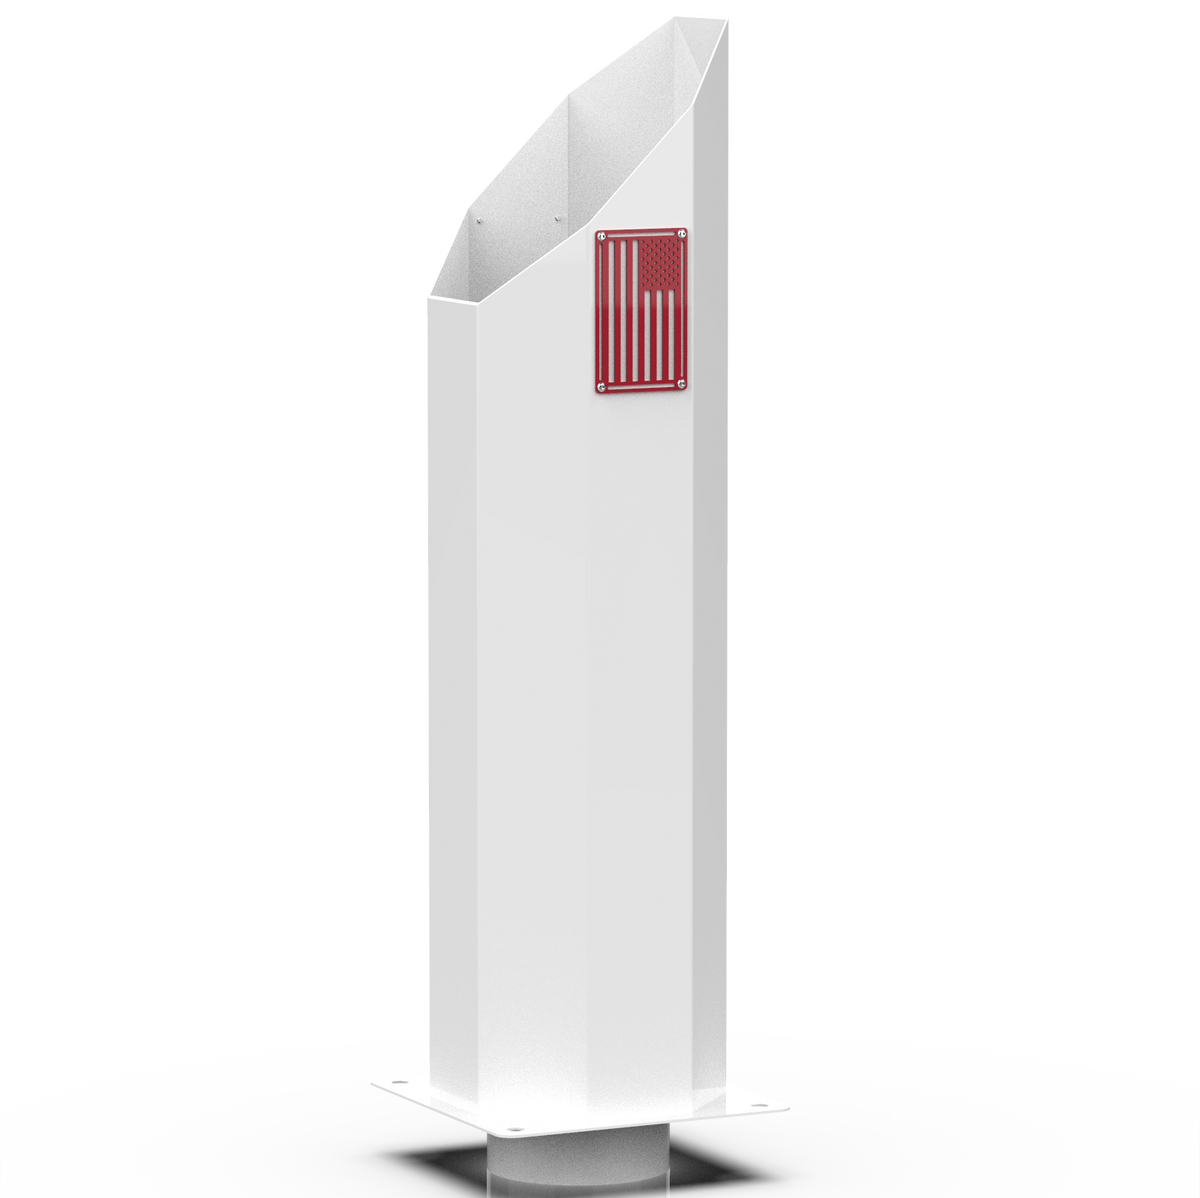 Custom Gloss White 4 Inch to 8 Inch Miter Octagon Exhaust Stack with Red American Flag Badge